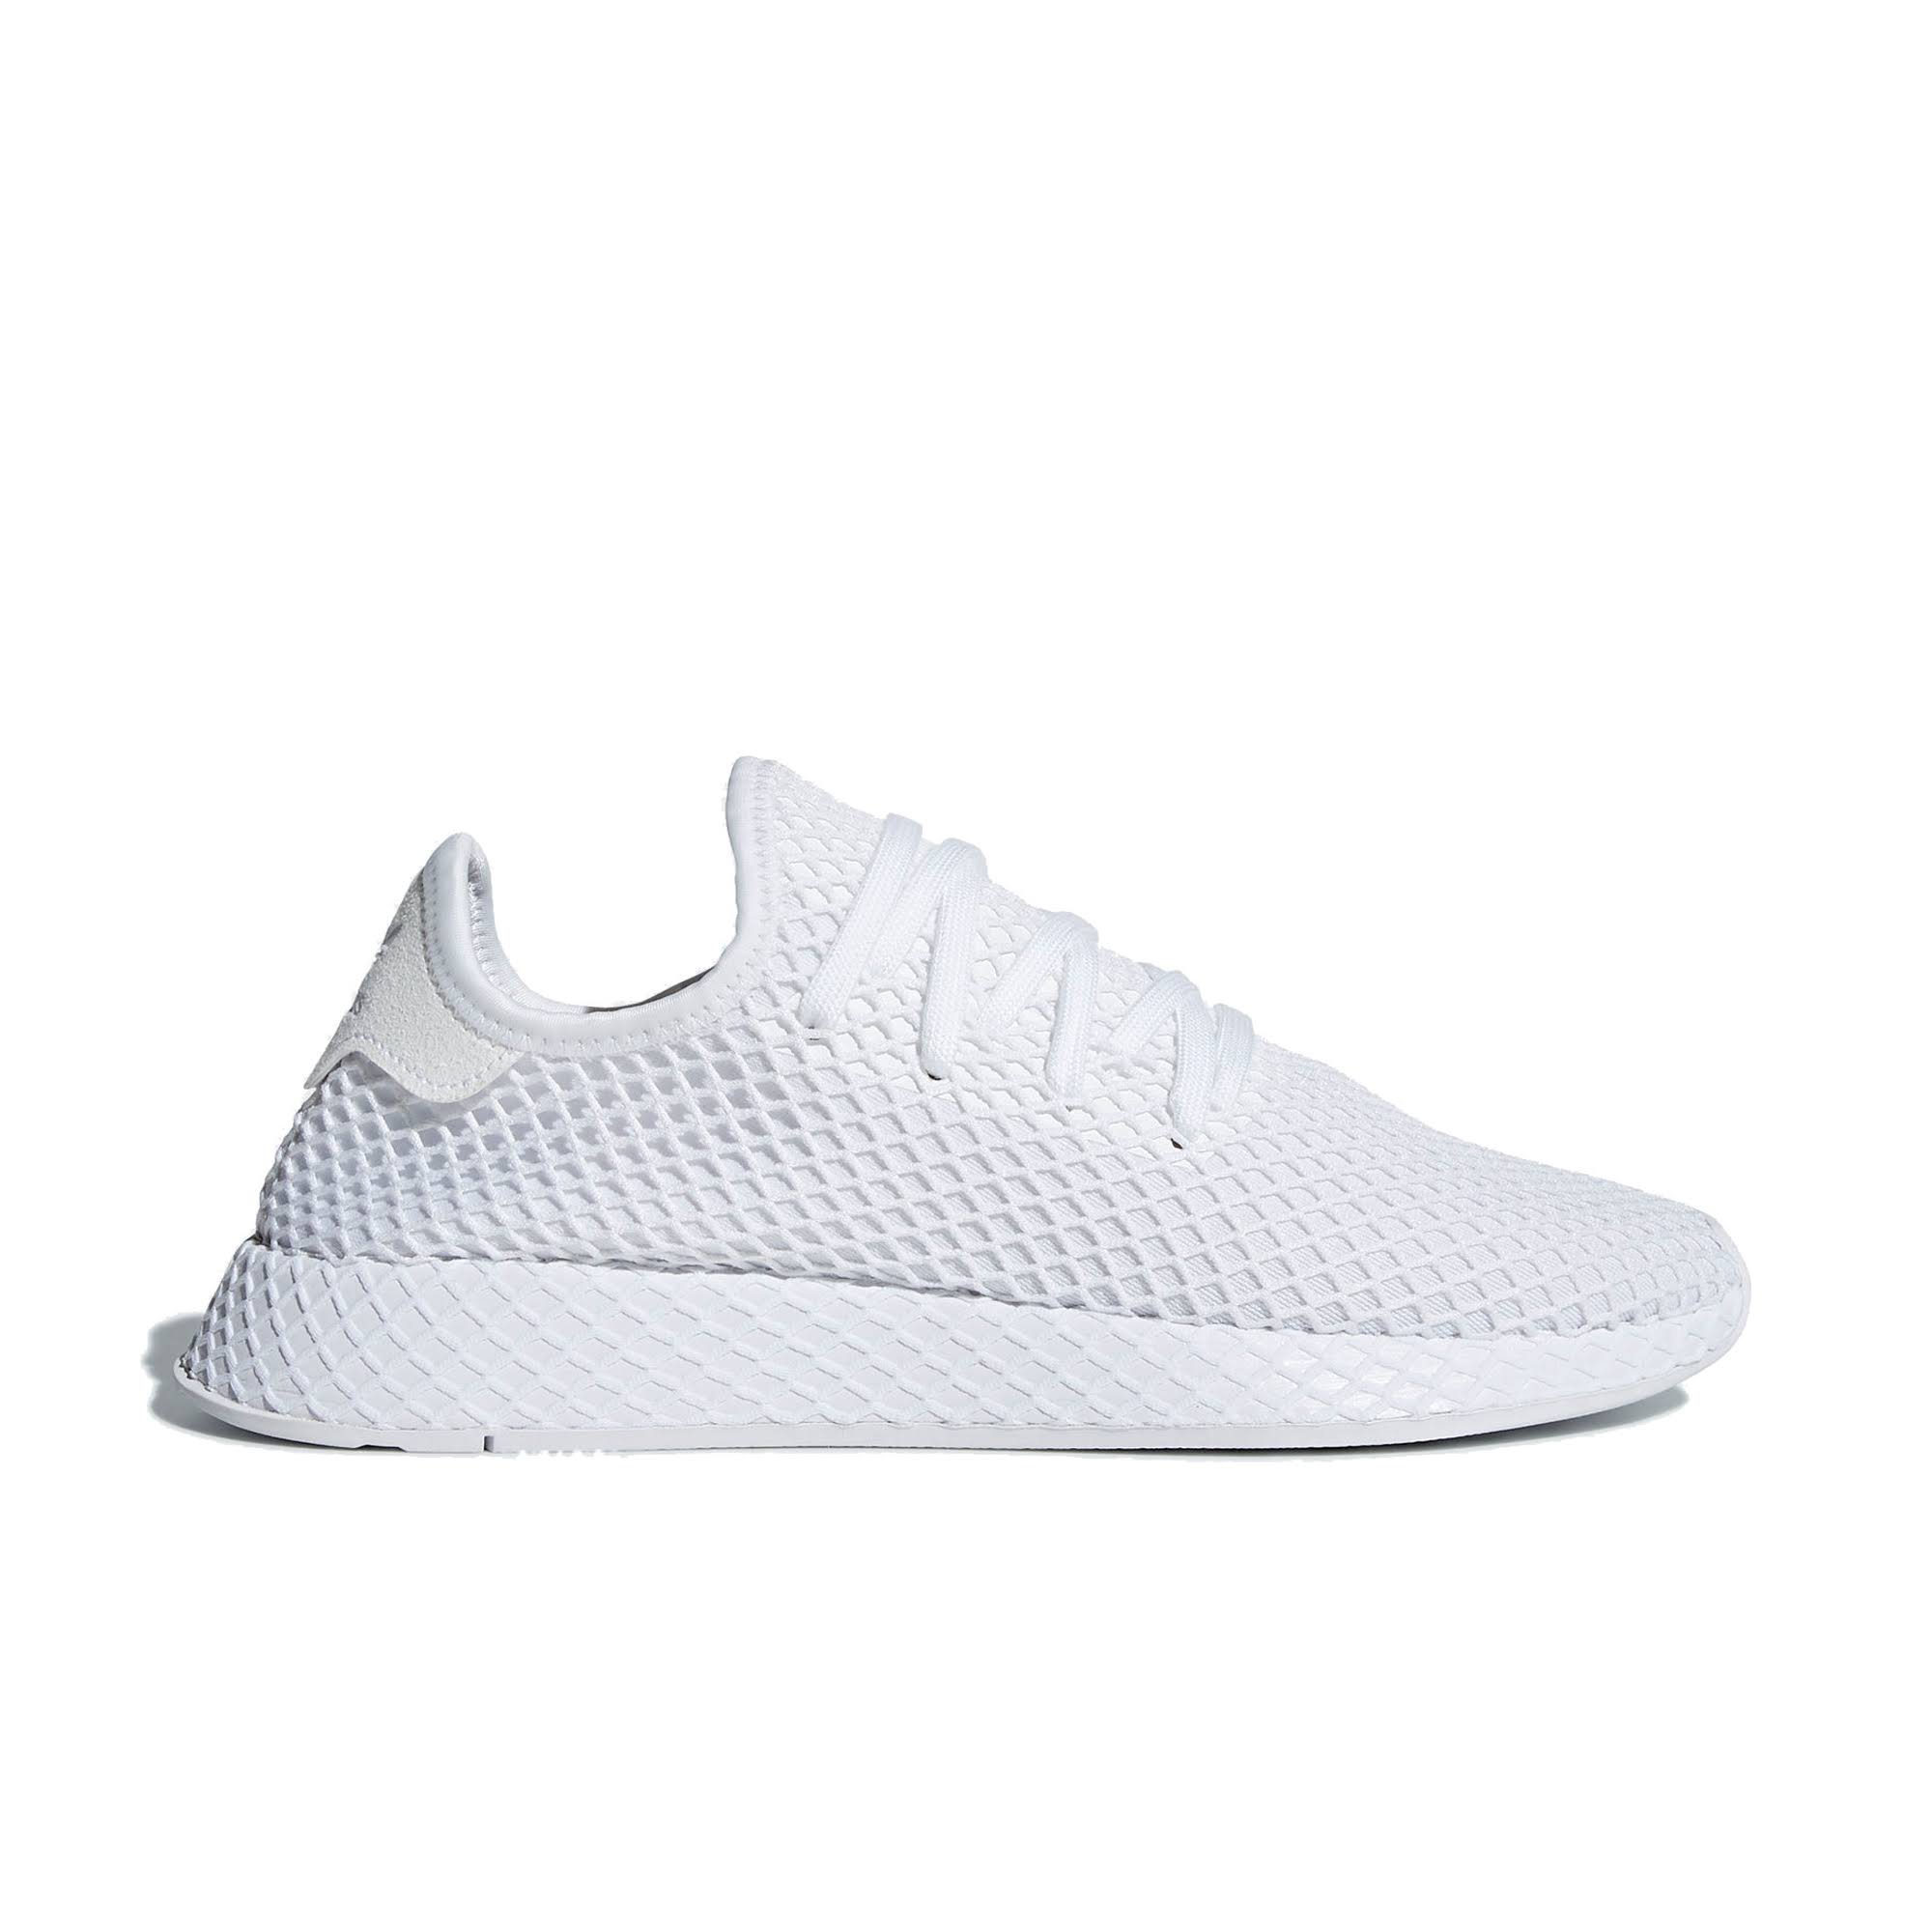 Zapatillas Deerupt Running Adidas White Hombre White white Runner Cq2625 pp67xqAO